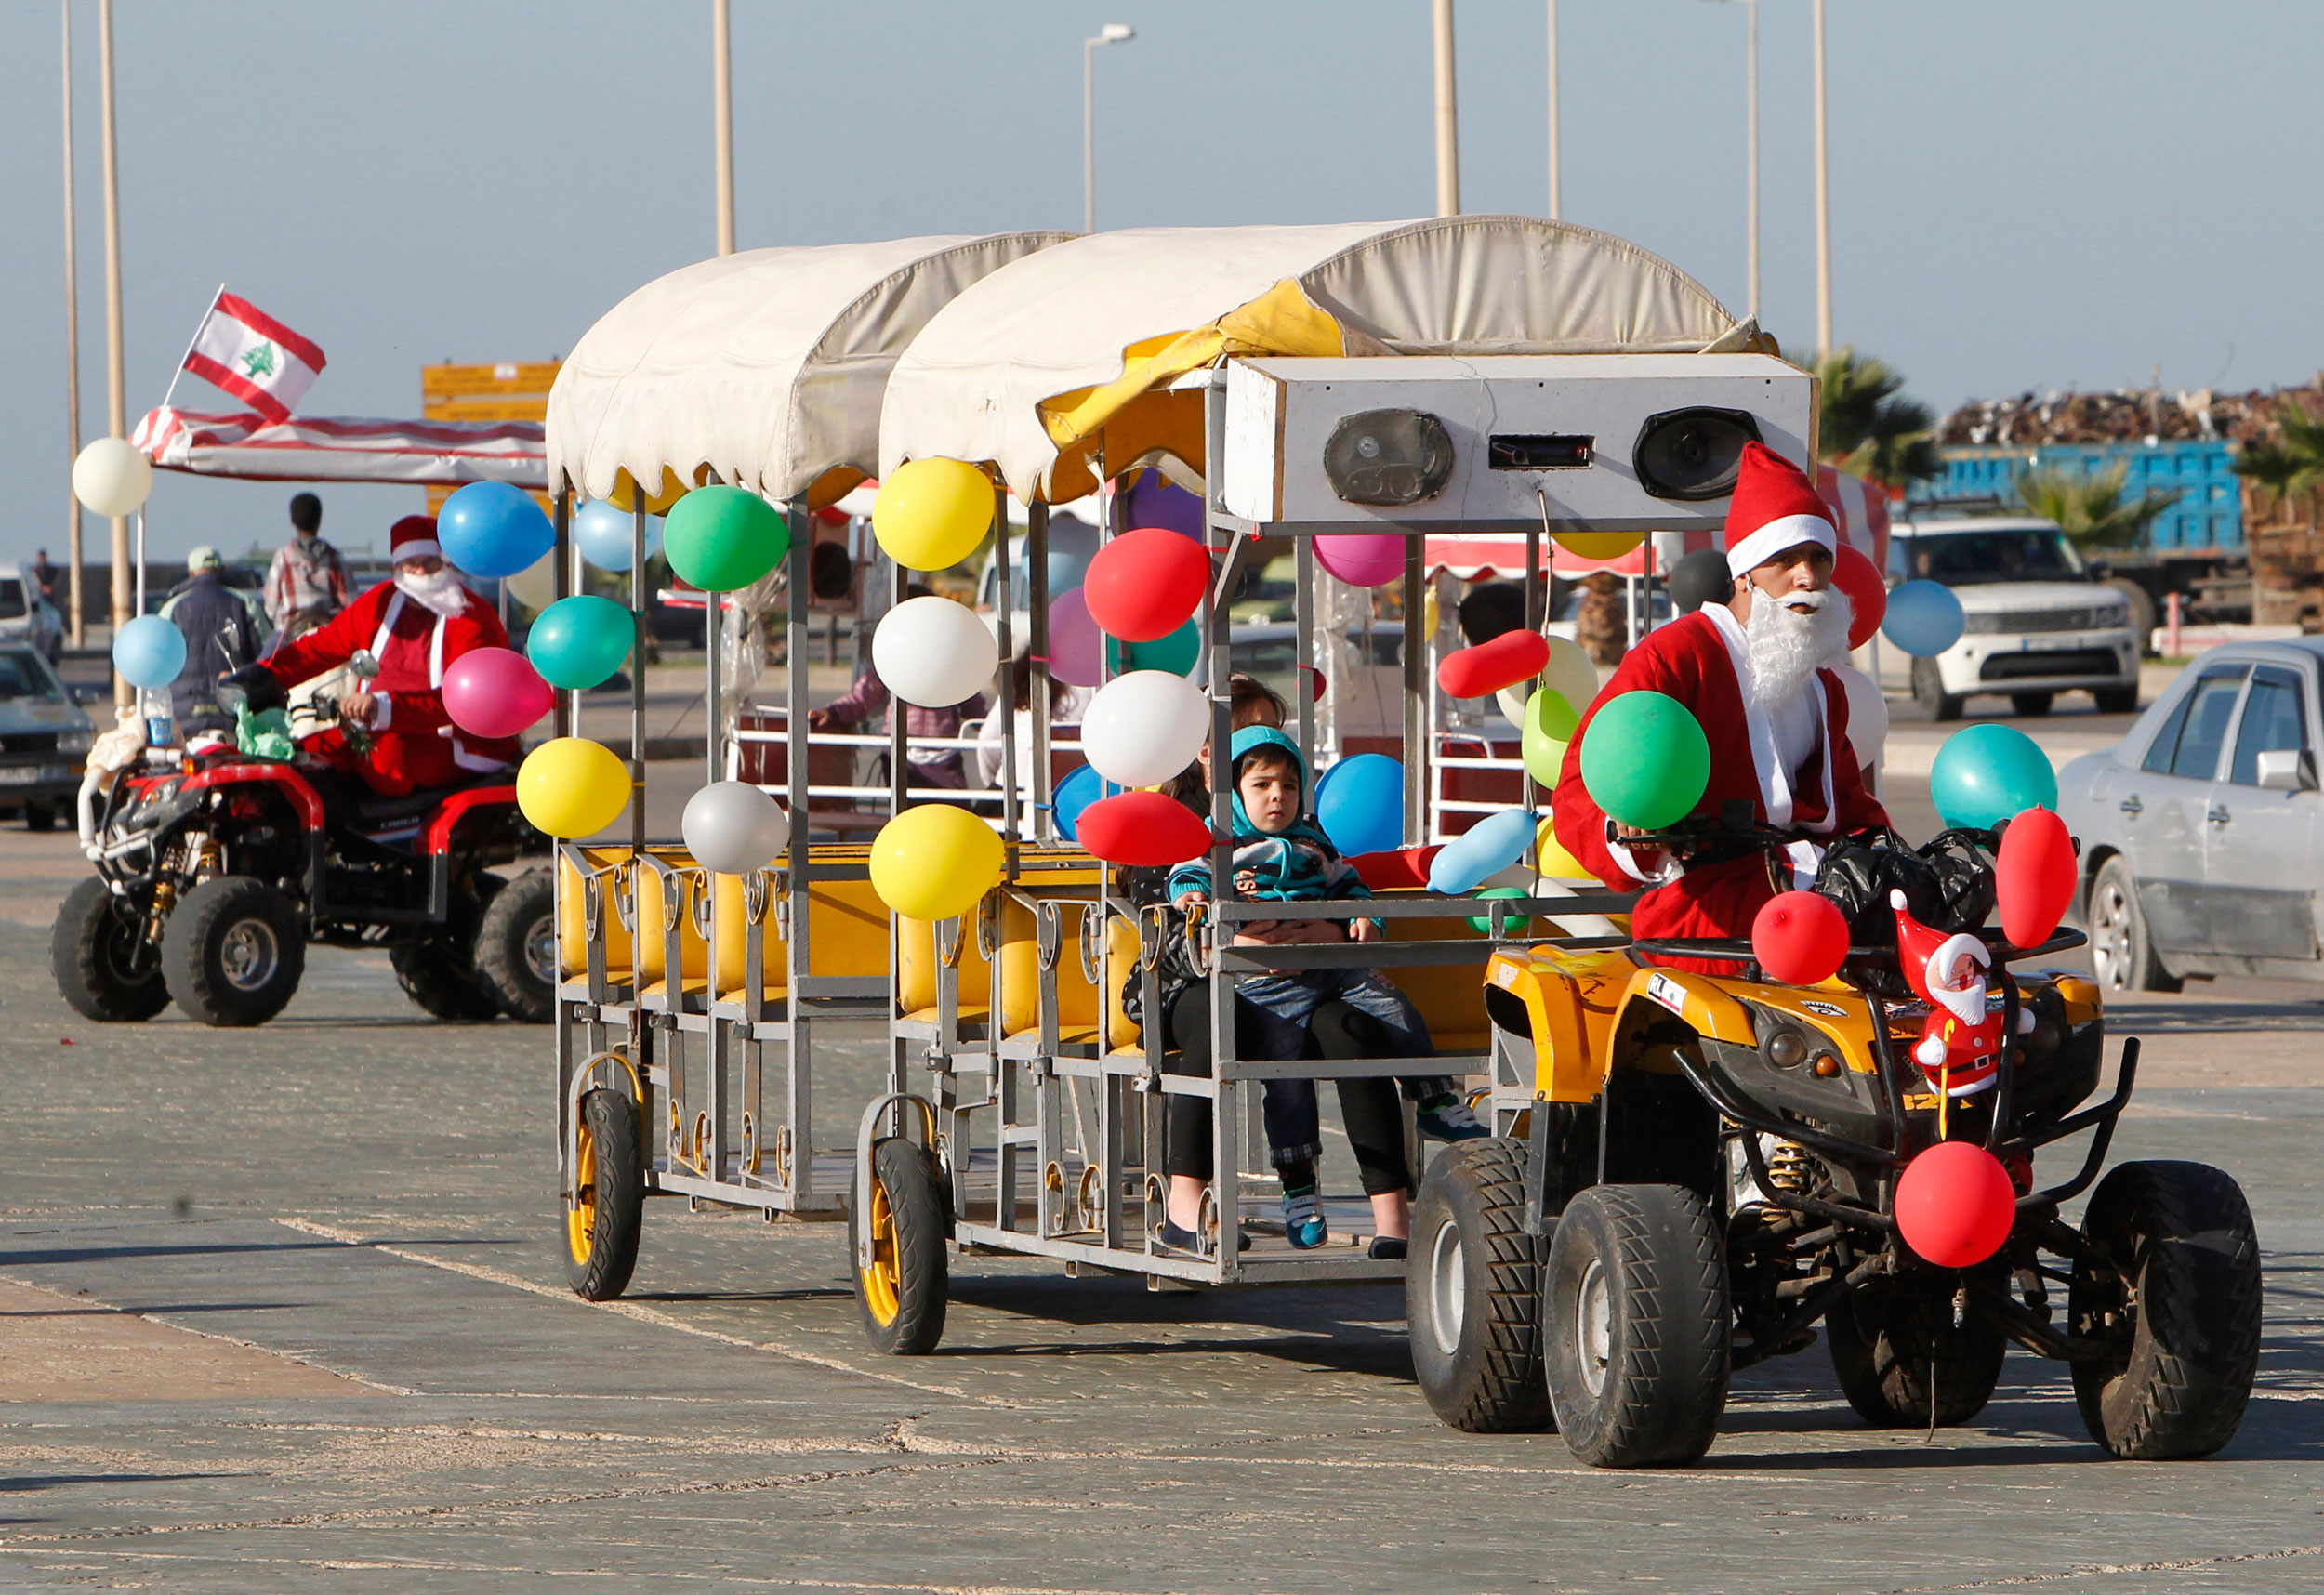 A man dressed as Santa Claus drives a vehicle during Christmas day in Sidon, South Lebanon on Dec. 25, 2014.